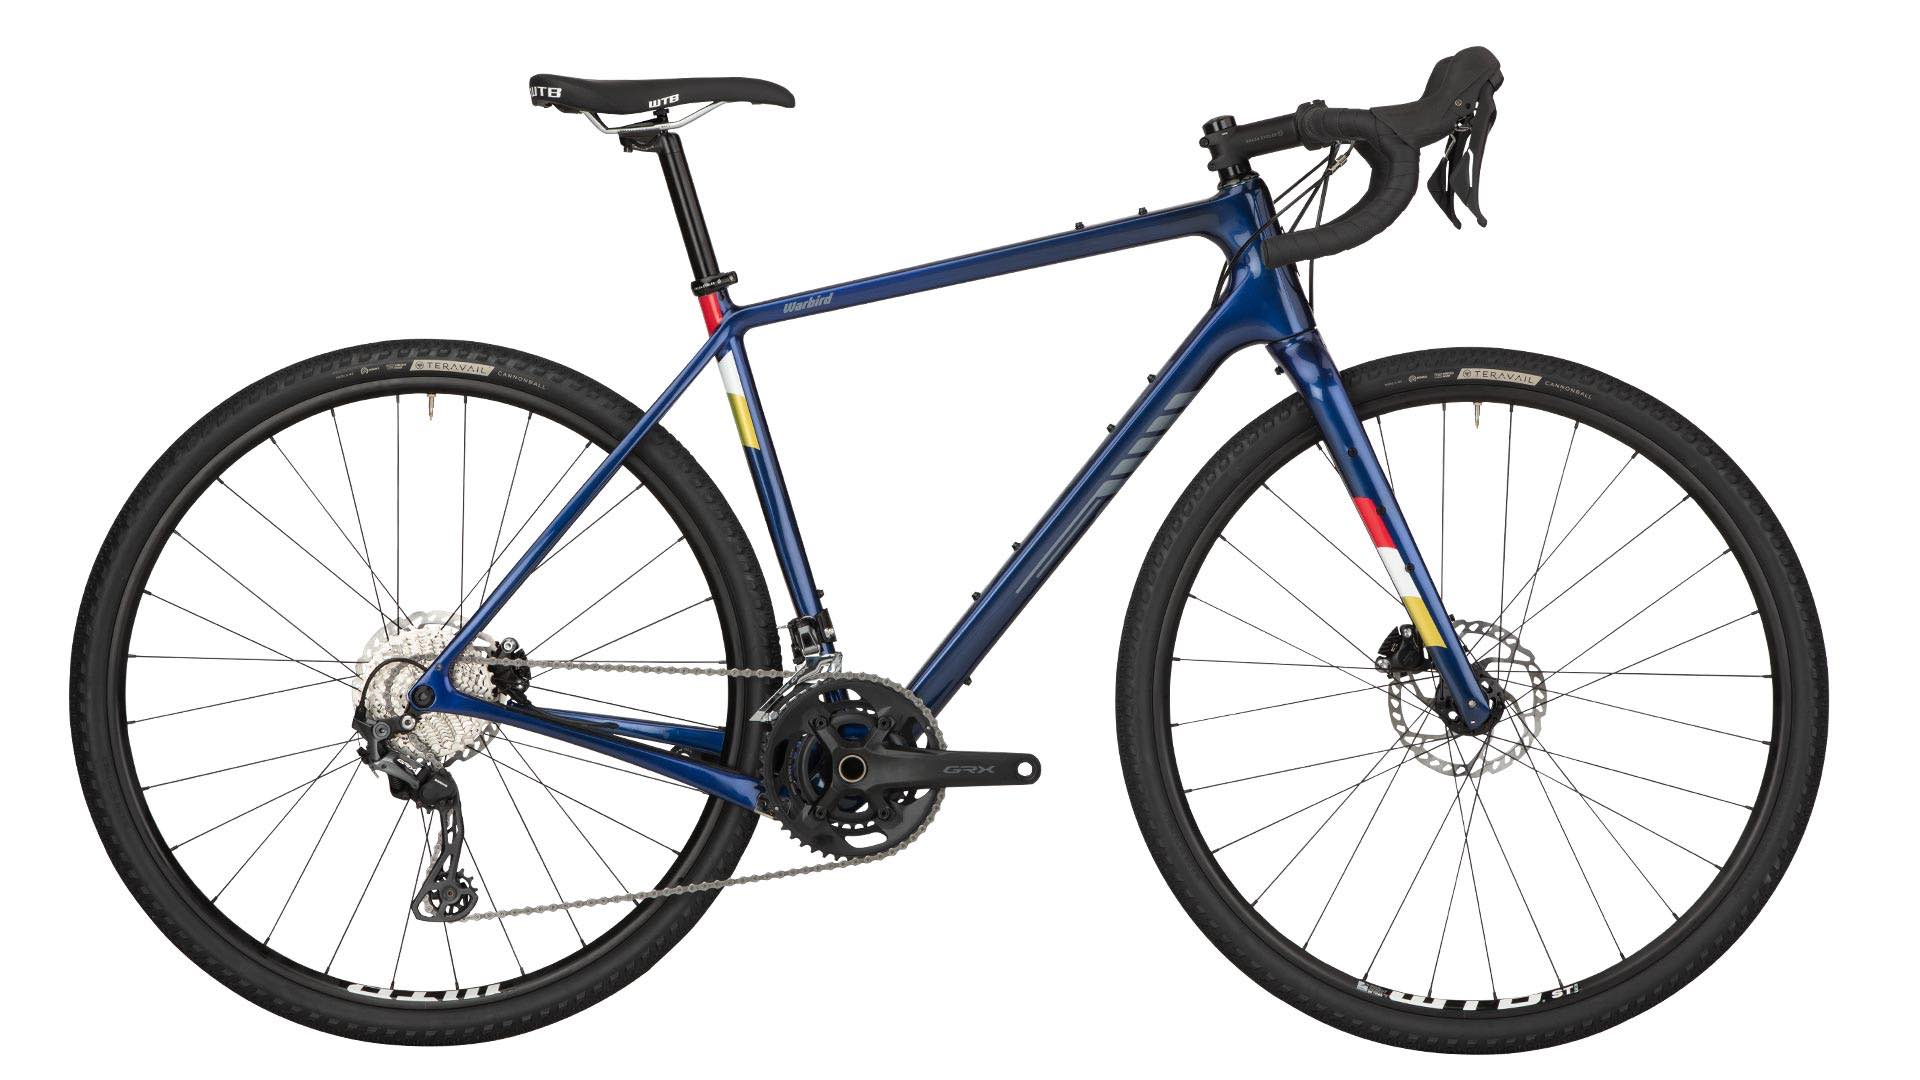 Stock image of a Salsa Warbird GRX 600 in dark blue